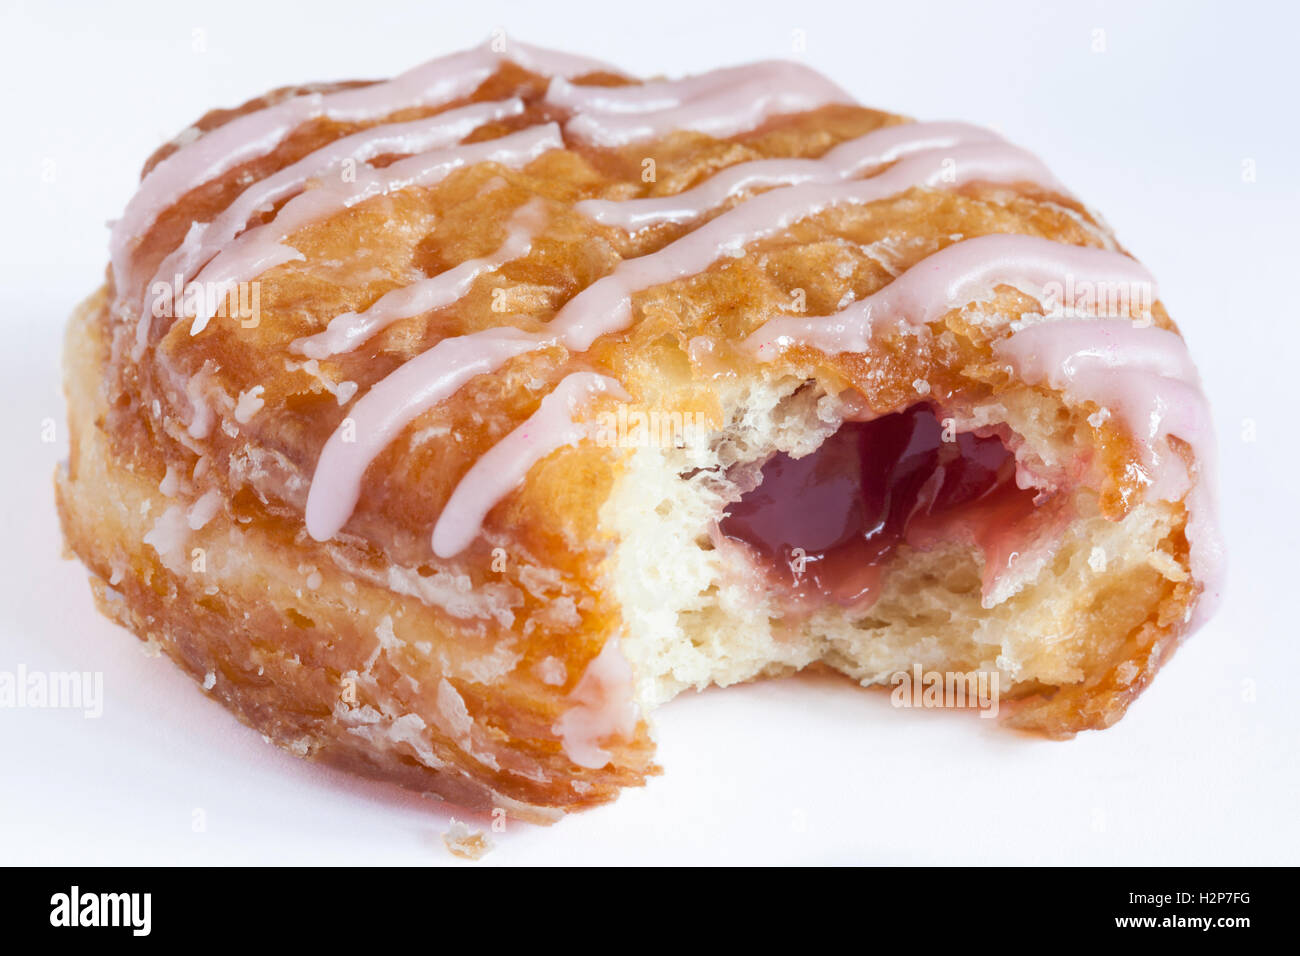 m s raspberry yum yums iced doughnut bitten into isolated. Black Bedroom Furniture Sets. Home Design Ideas